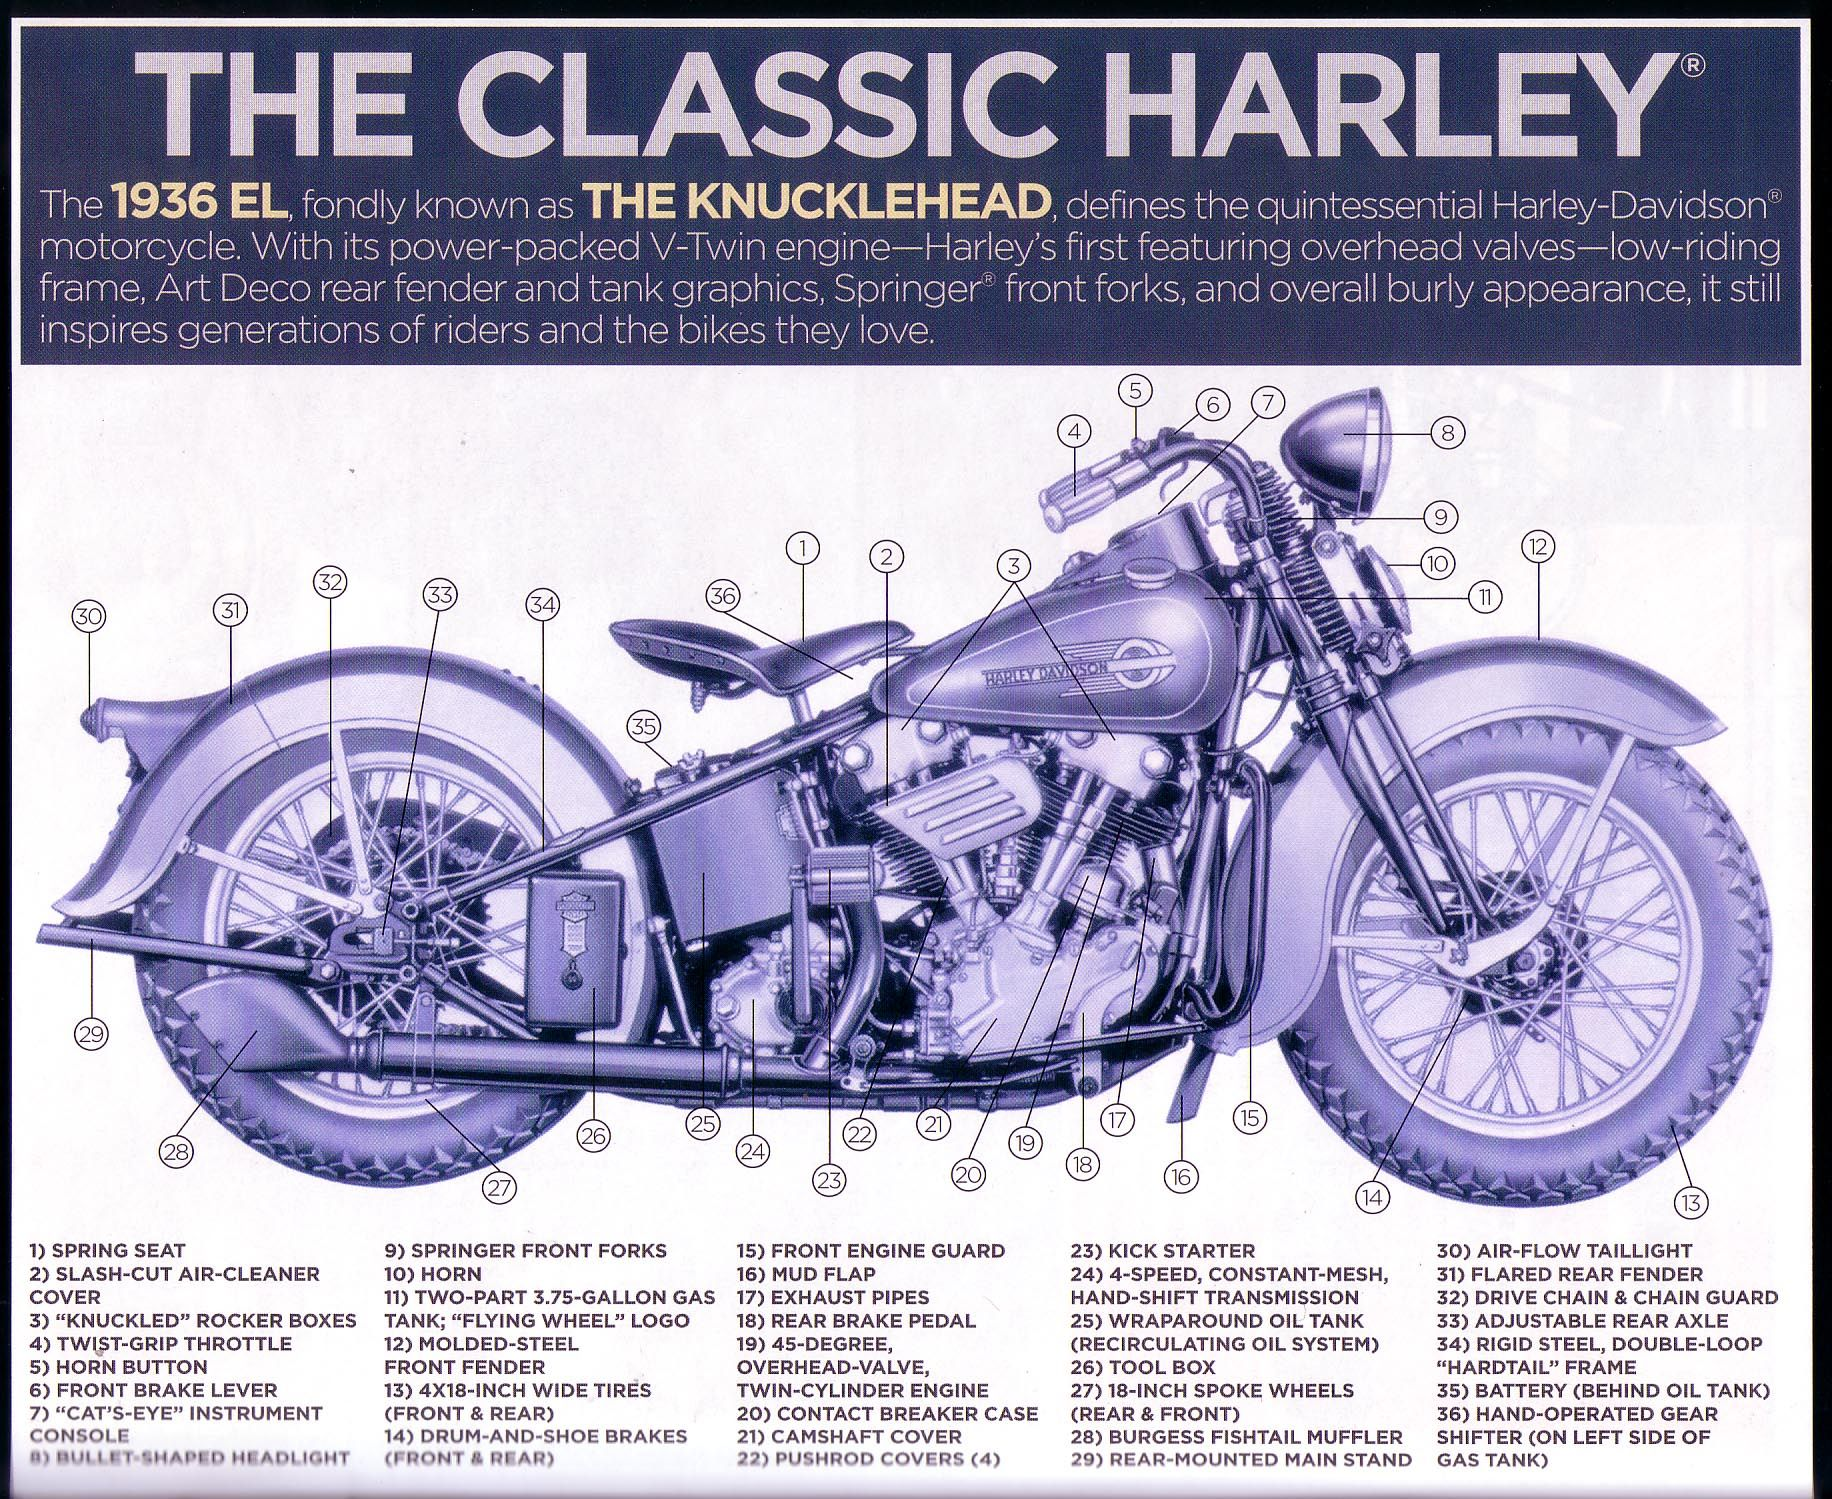 small resolution of harley davidson motorcycle diagrams wiring diagrams harley springer parts diagram harley davidson motorcycle diagrams wiring diagram